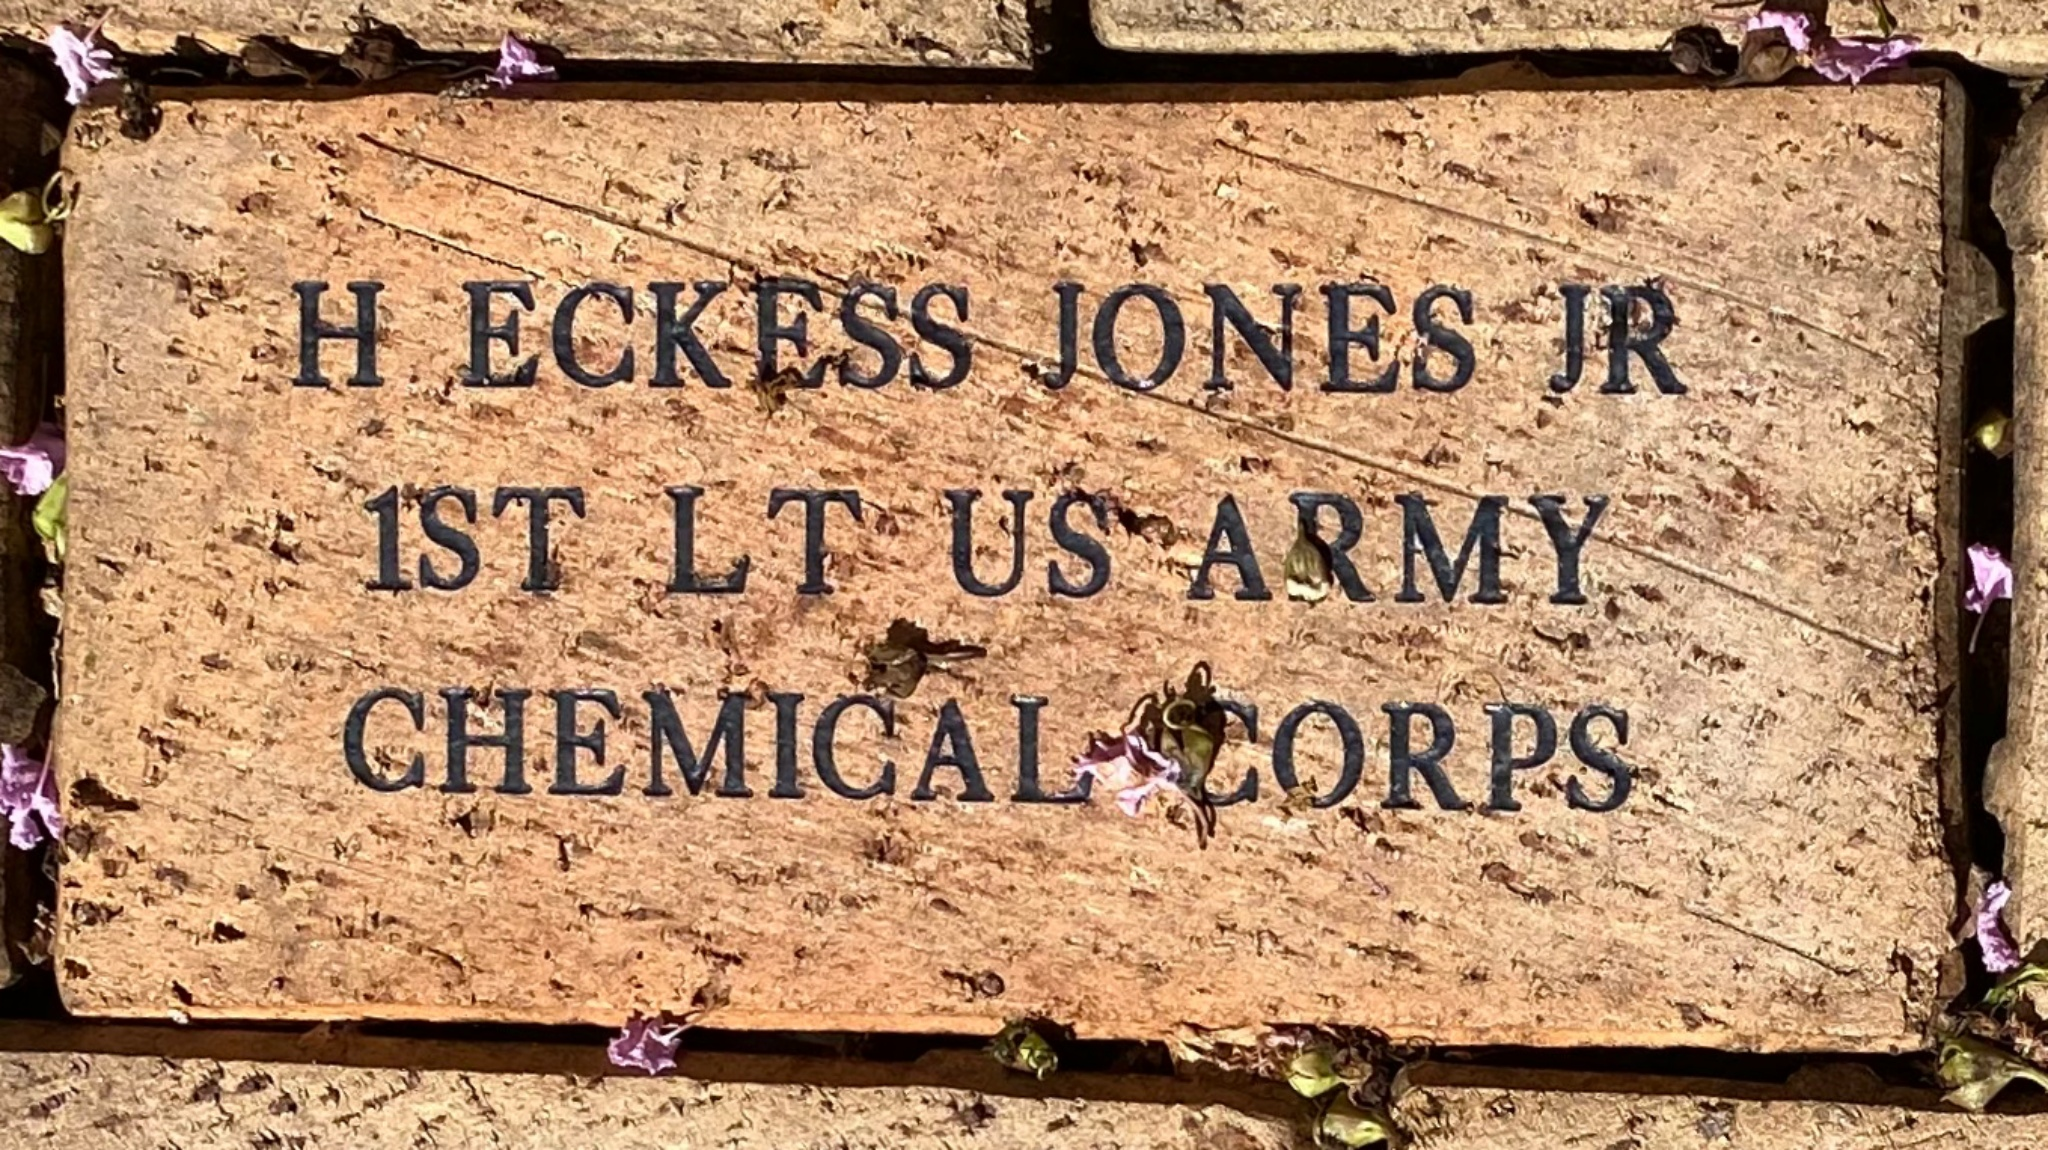 H ECKESS JONES JR 1ST LT US ARMY CHEMICAL CORPS